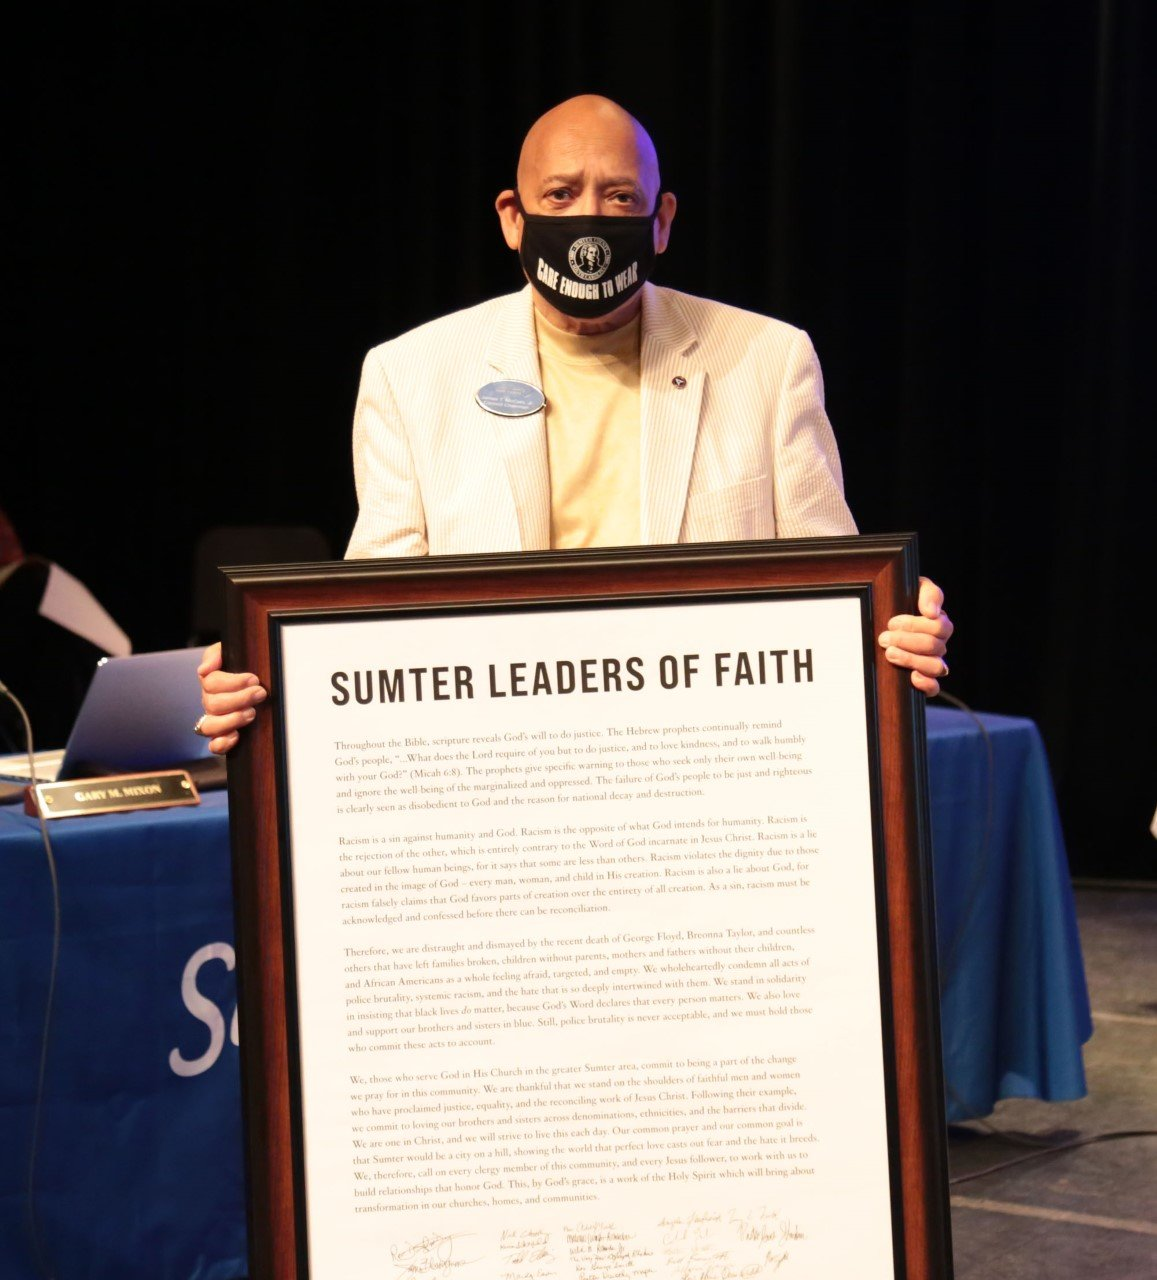 Members of the Sumter Ministerial Alliance presented a framed statement to Sumter County Council Chairman James T. McCain Jr. during council's meeting at Patriot Hall. The Alliance represents 68 Pastors in Sumter County and the statement shows their solidarity against racism. McCain accepted on behalf of Sumter County Council.